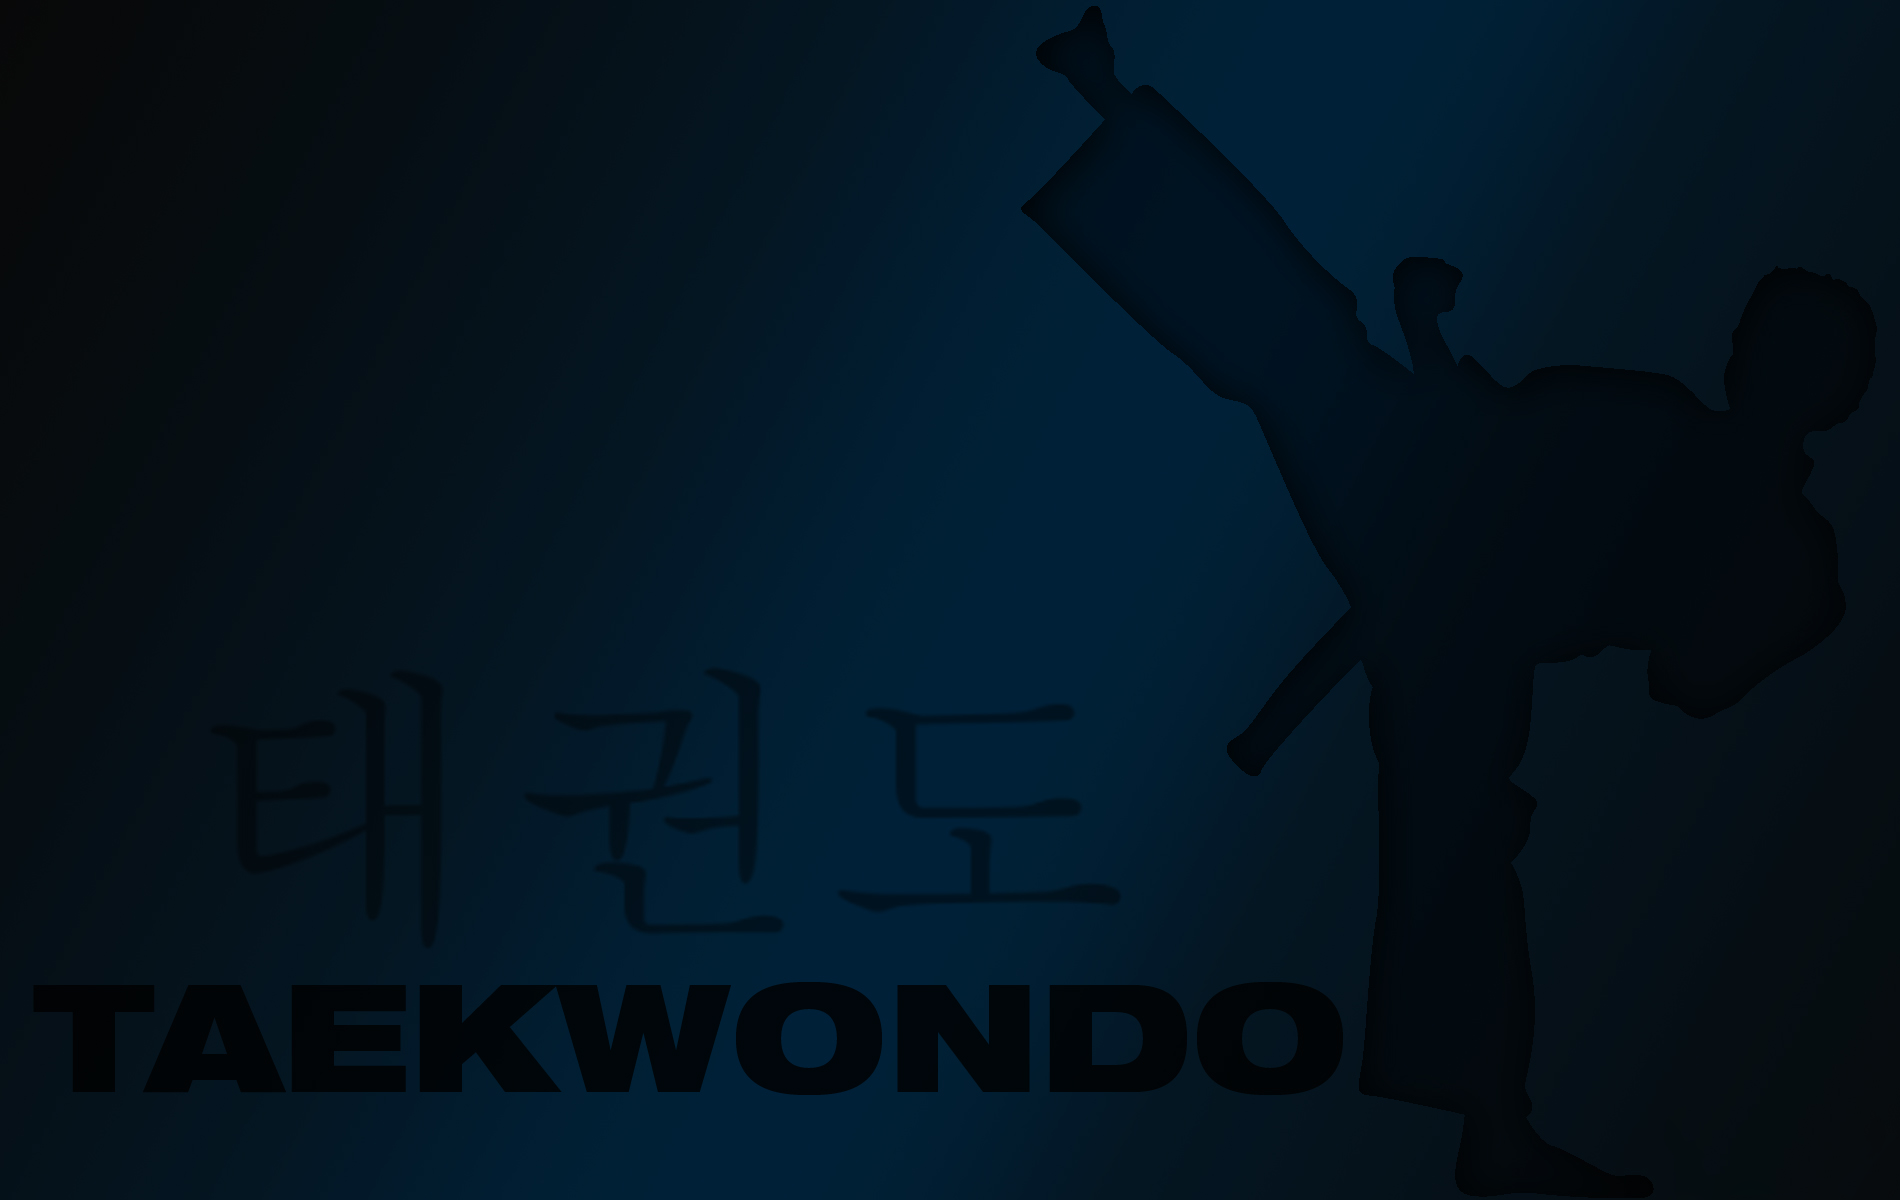 Take Wondo martial Art Wallpaper